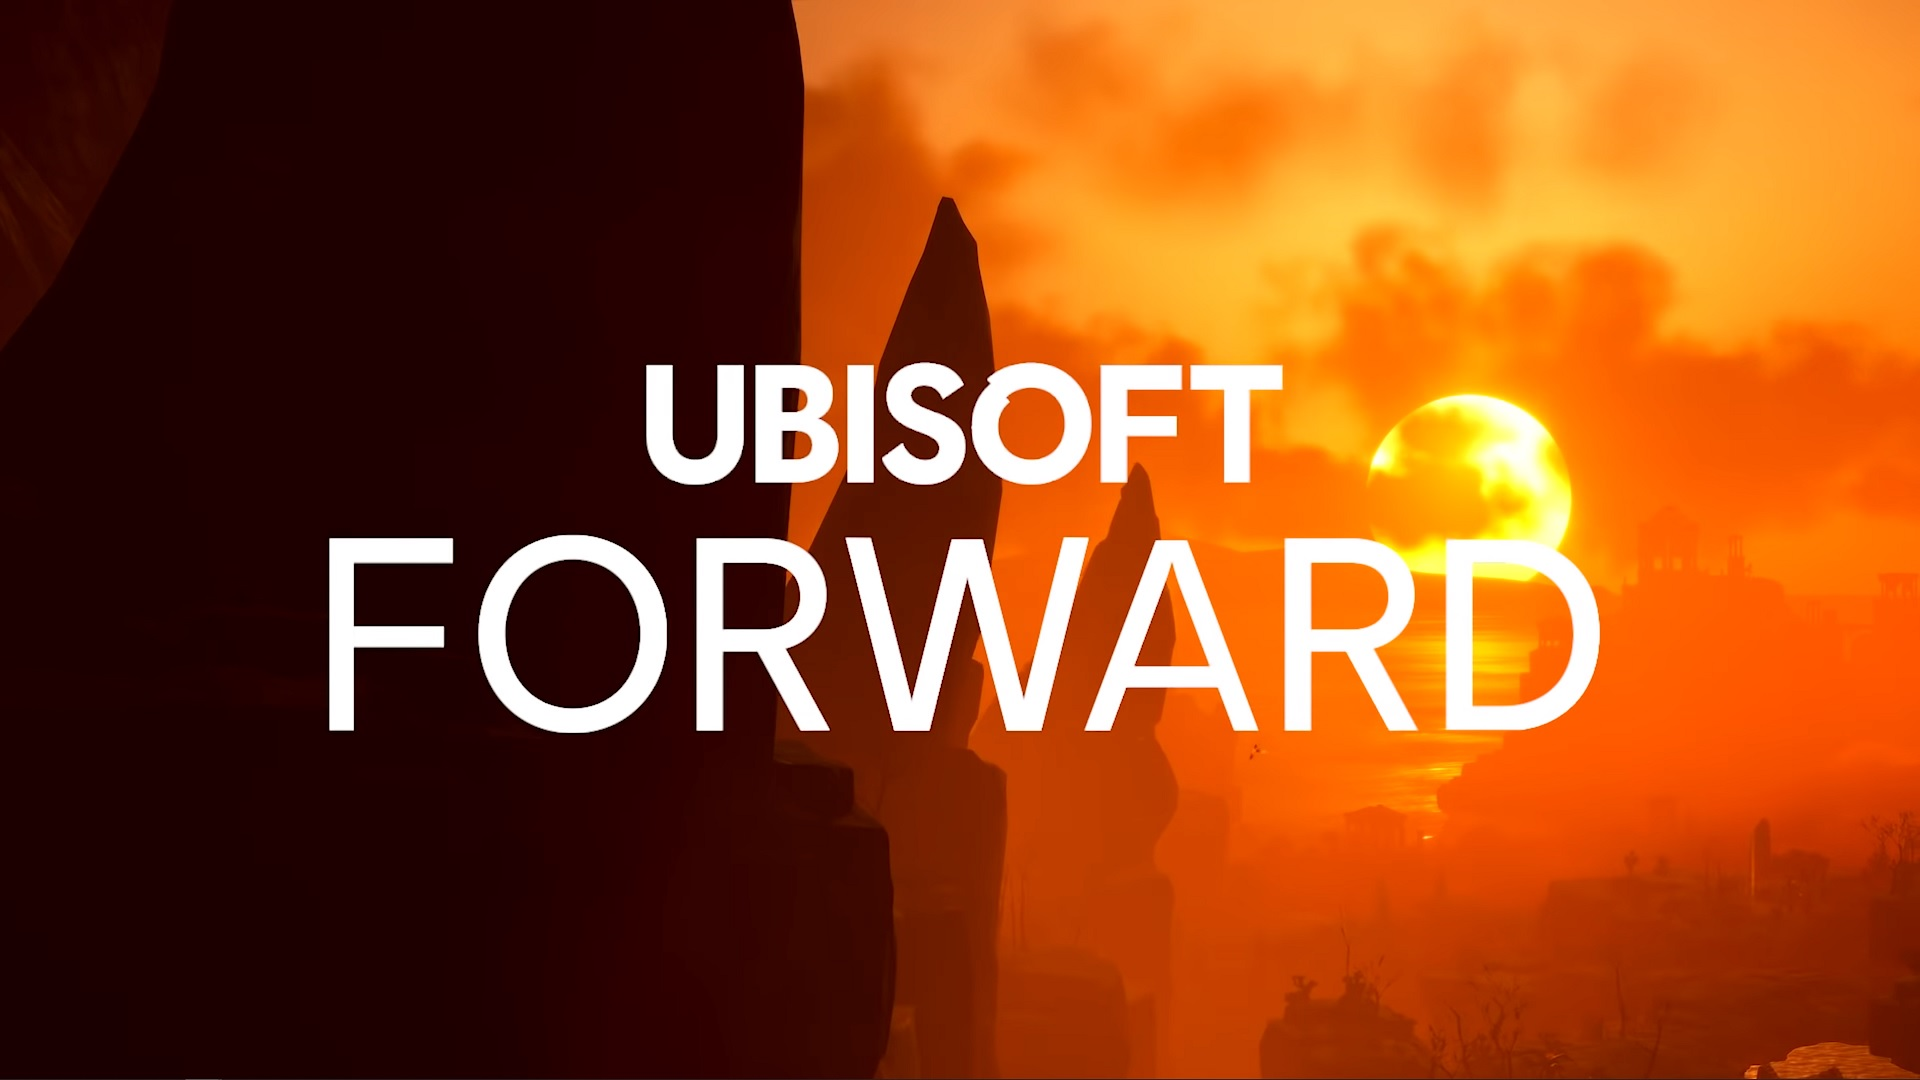 Ubisoft Forward  Returns Next Week